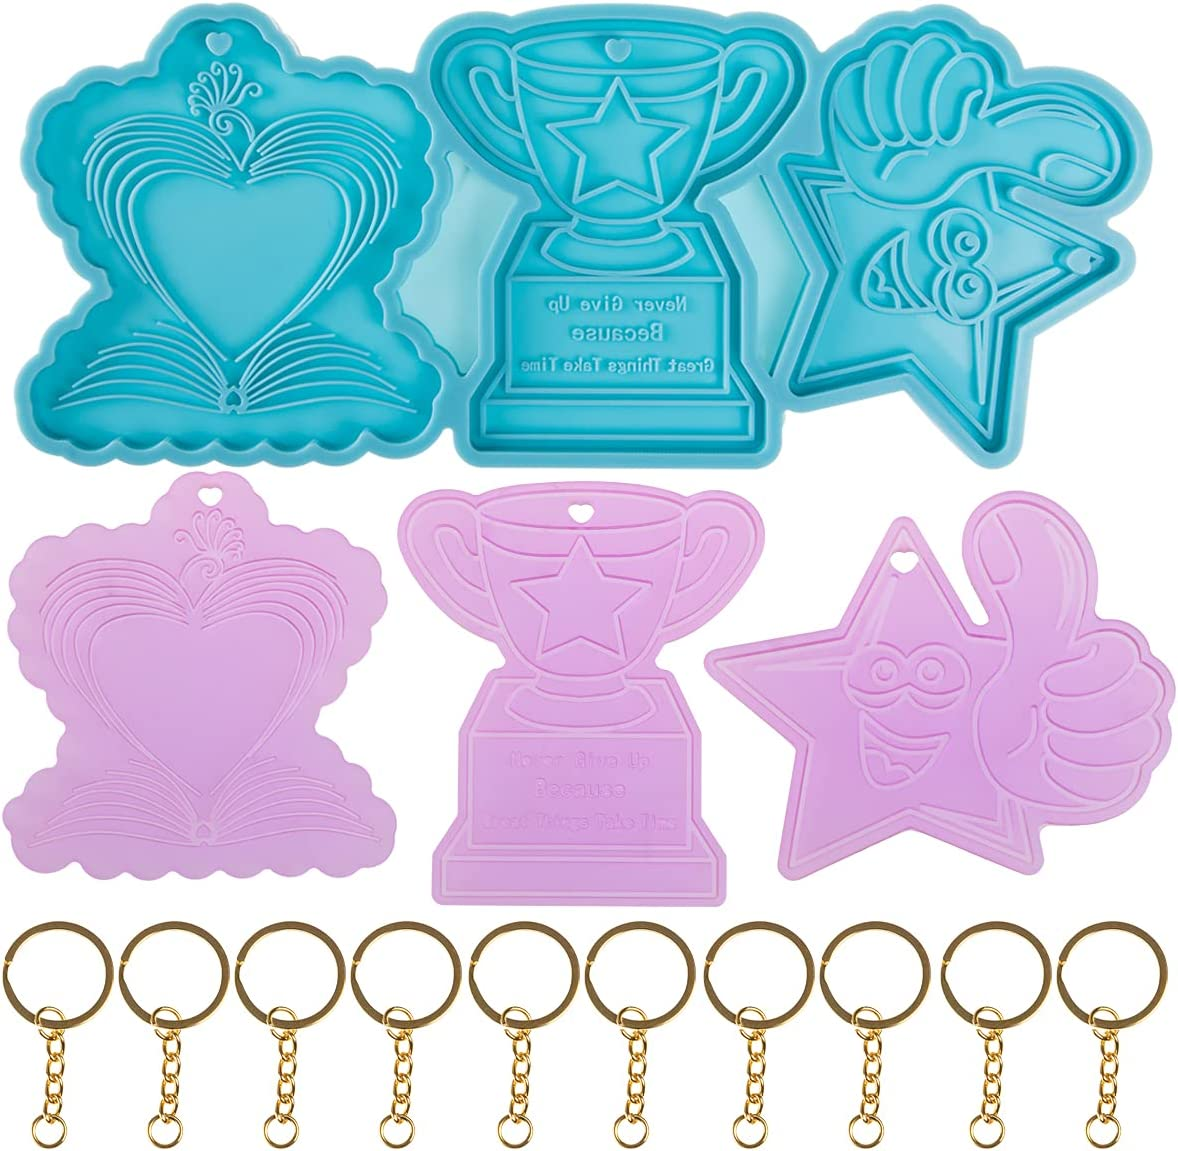 Newinglan Super Luxury goods Glossy Keychain Epoxy Silicone with Max 55% OFF Resin 1 Mold